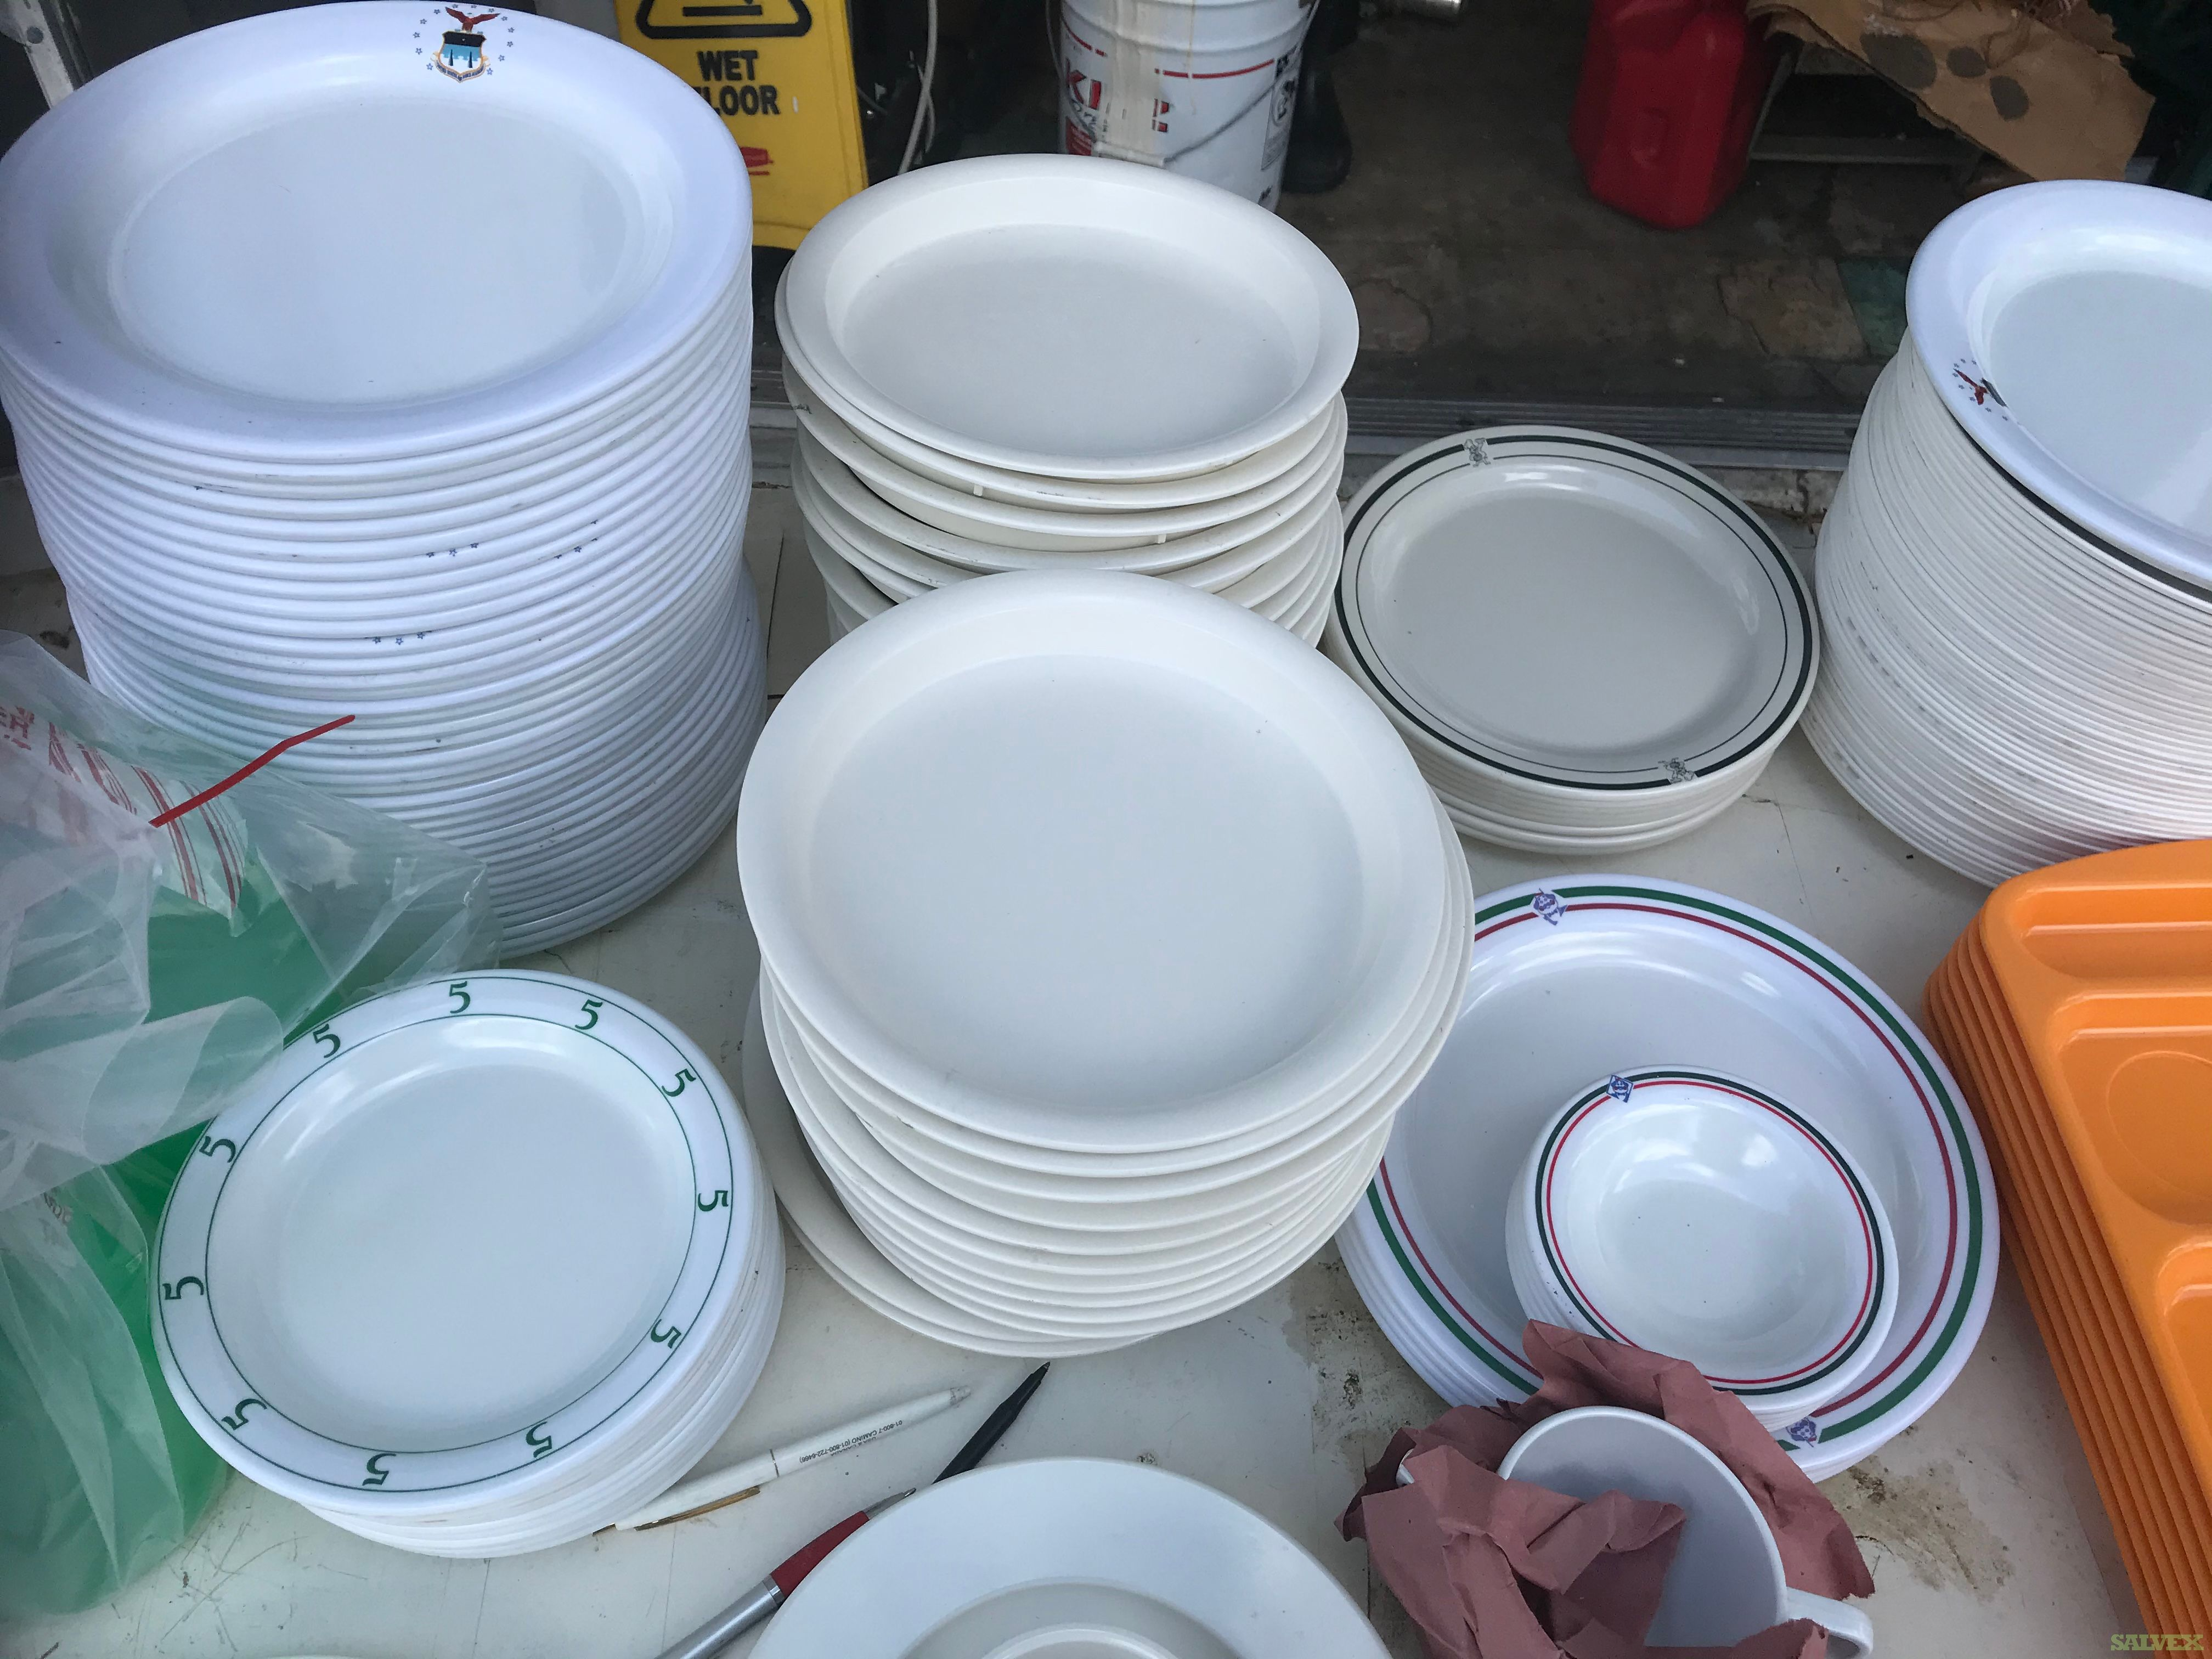 Melamine Dishes Bowl Plates Platters Cup (10,000 units)